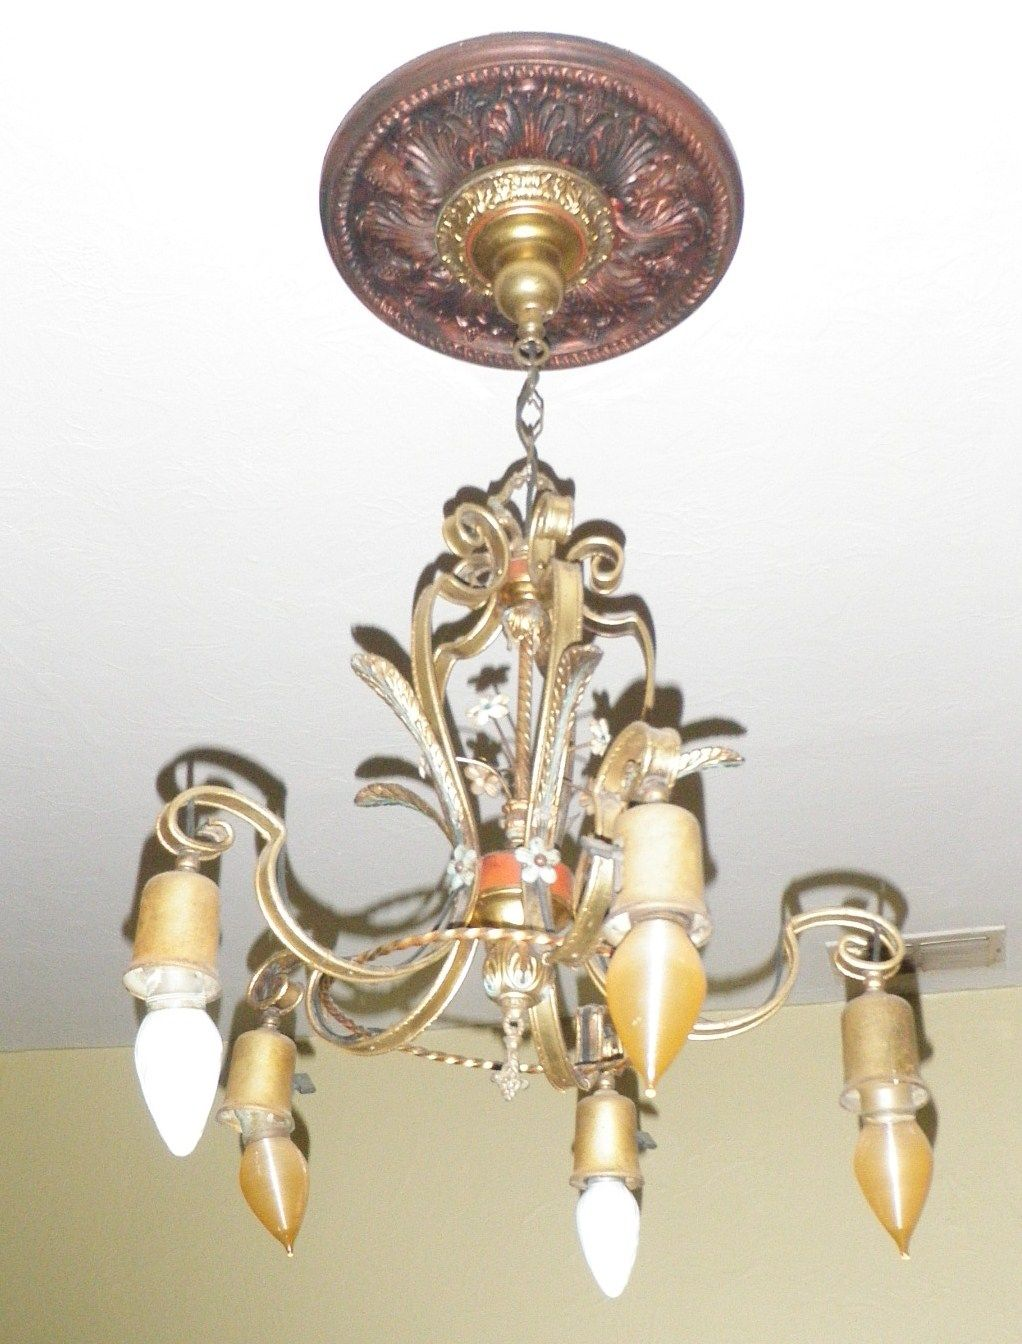 My dining room 1920s chandelier bungalow junk pinterest 1920s my dining room 1920s chandelier arubaitofo Image collections